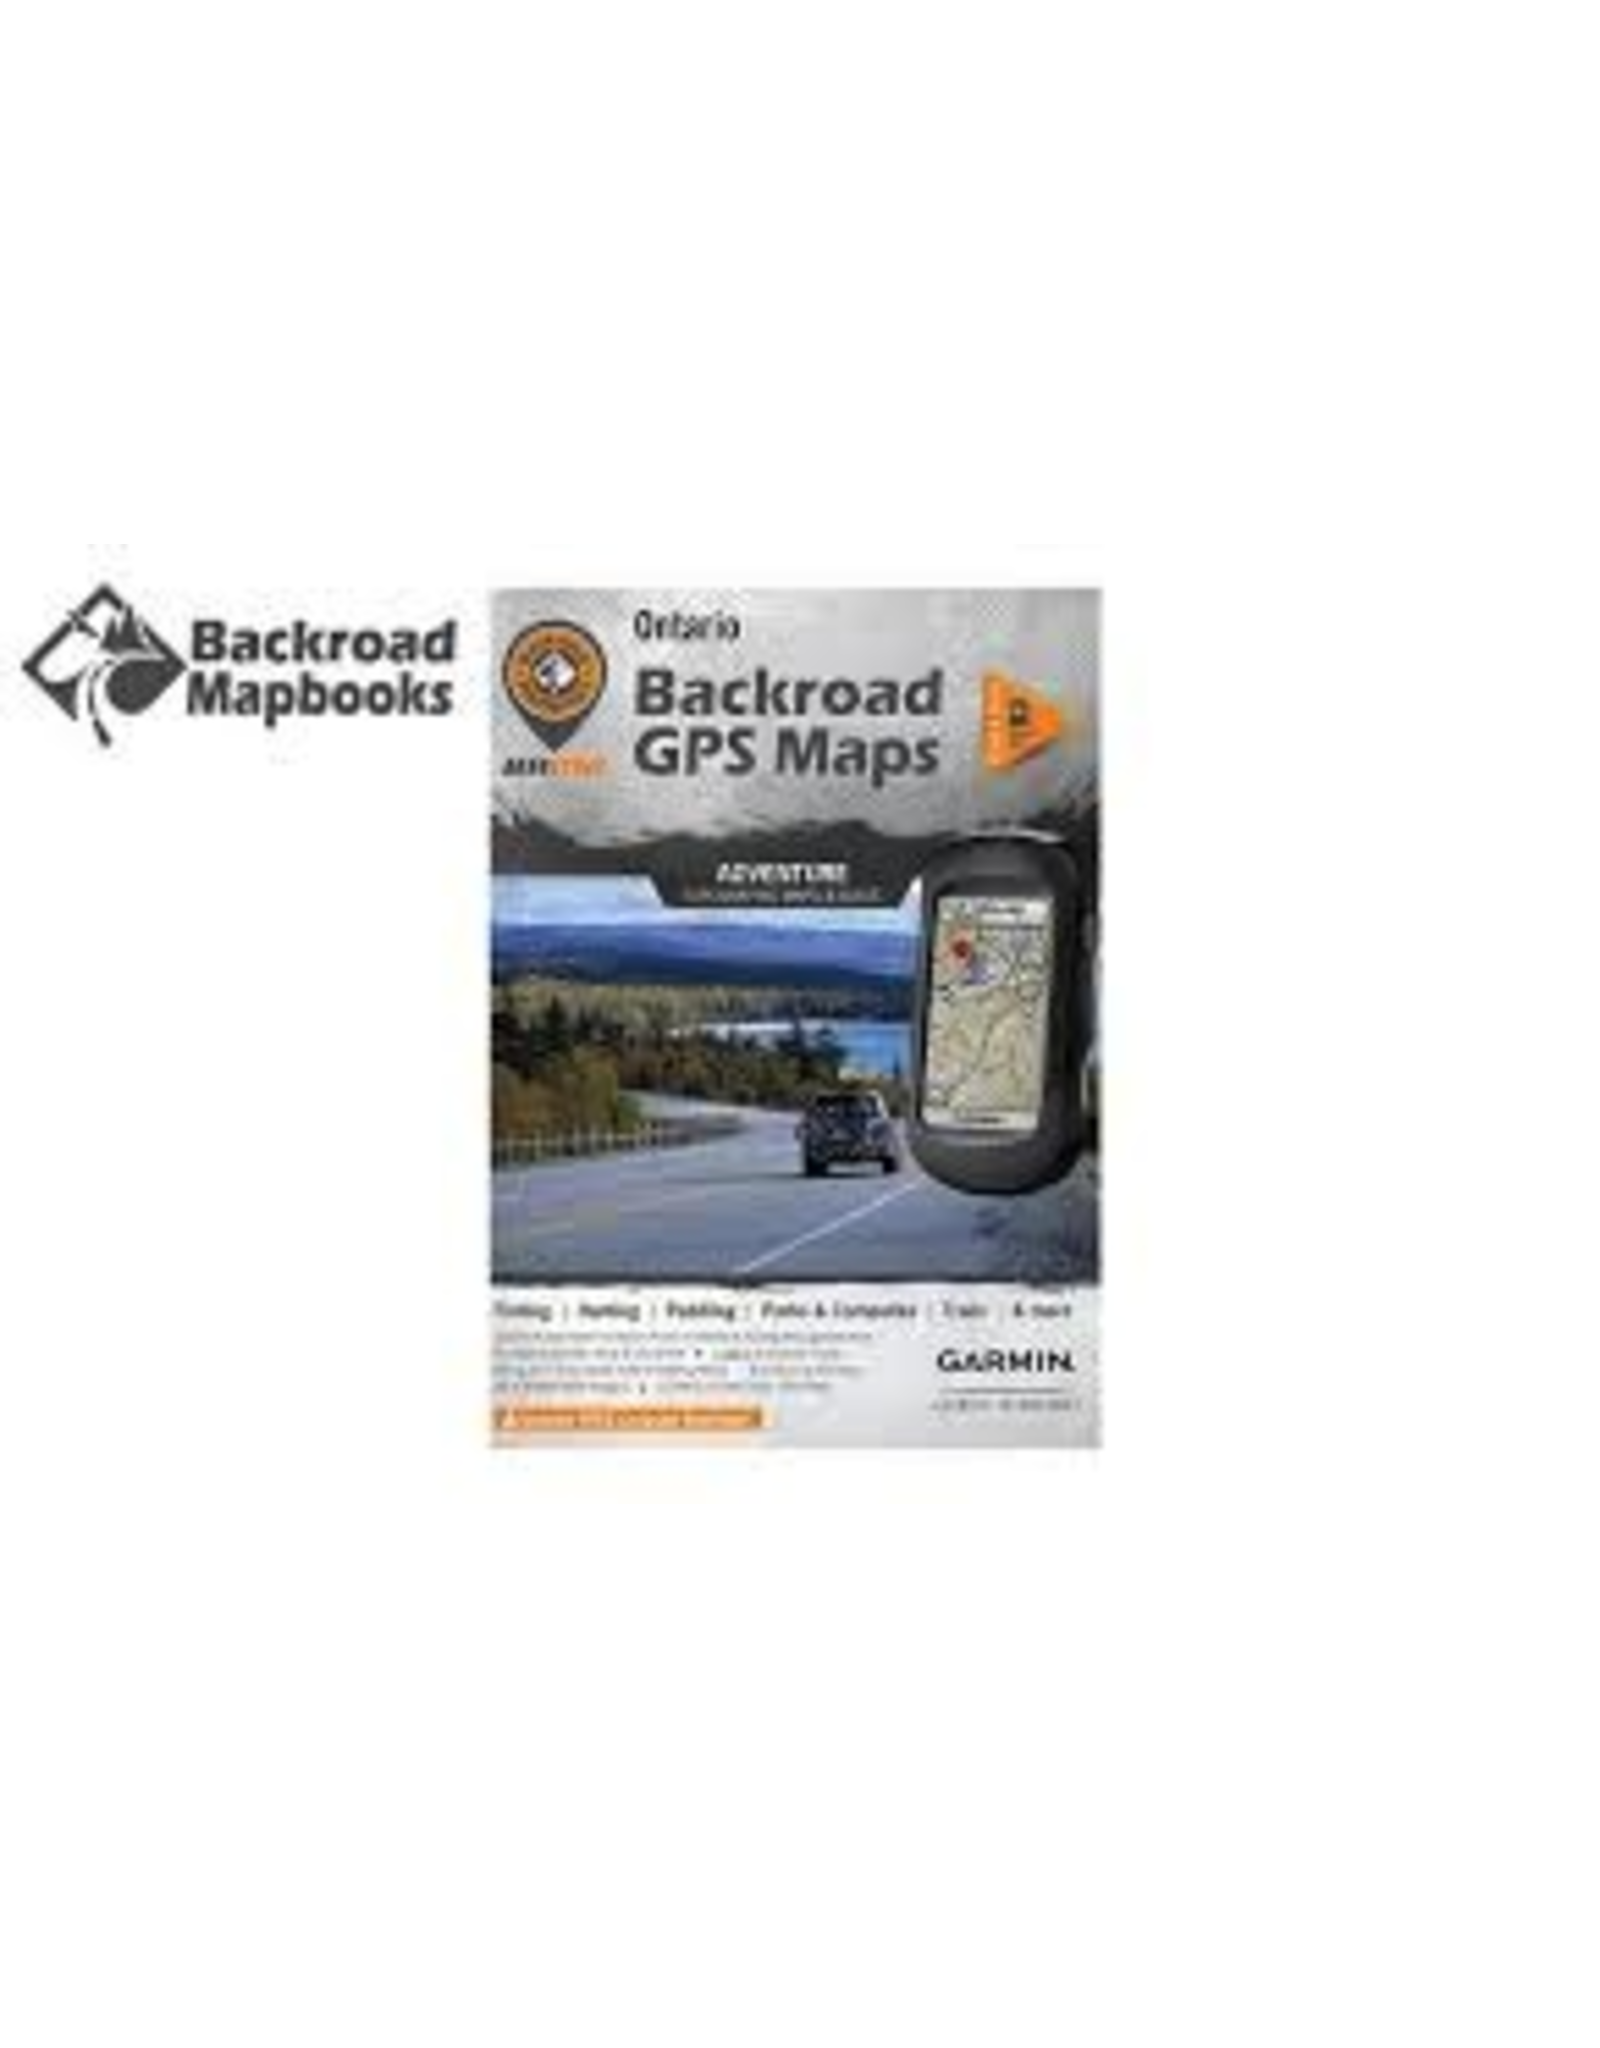 Backroad Mapbooks Backroad Mapbooks  ONONSD Ontario GPS  Maps SD